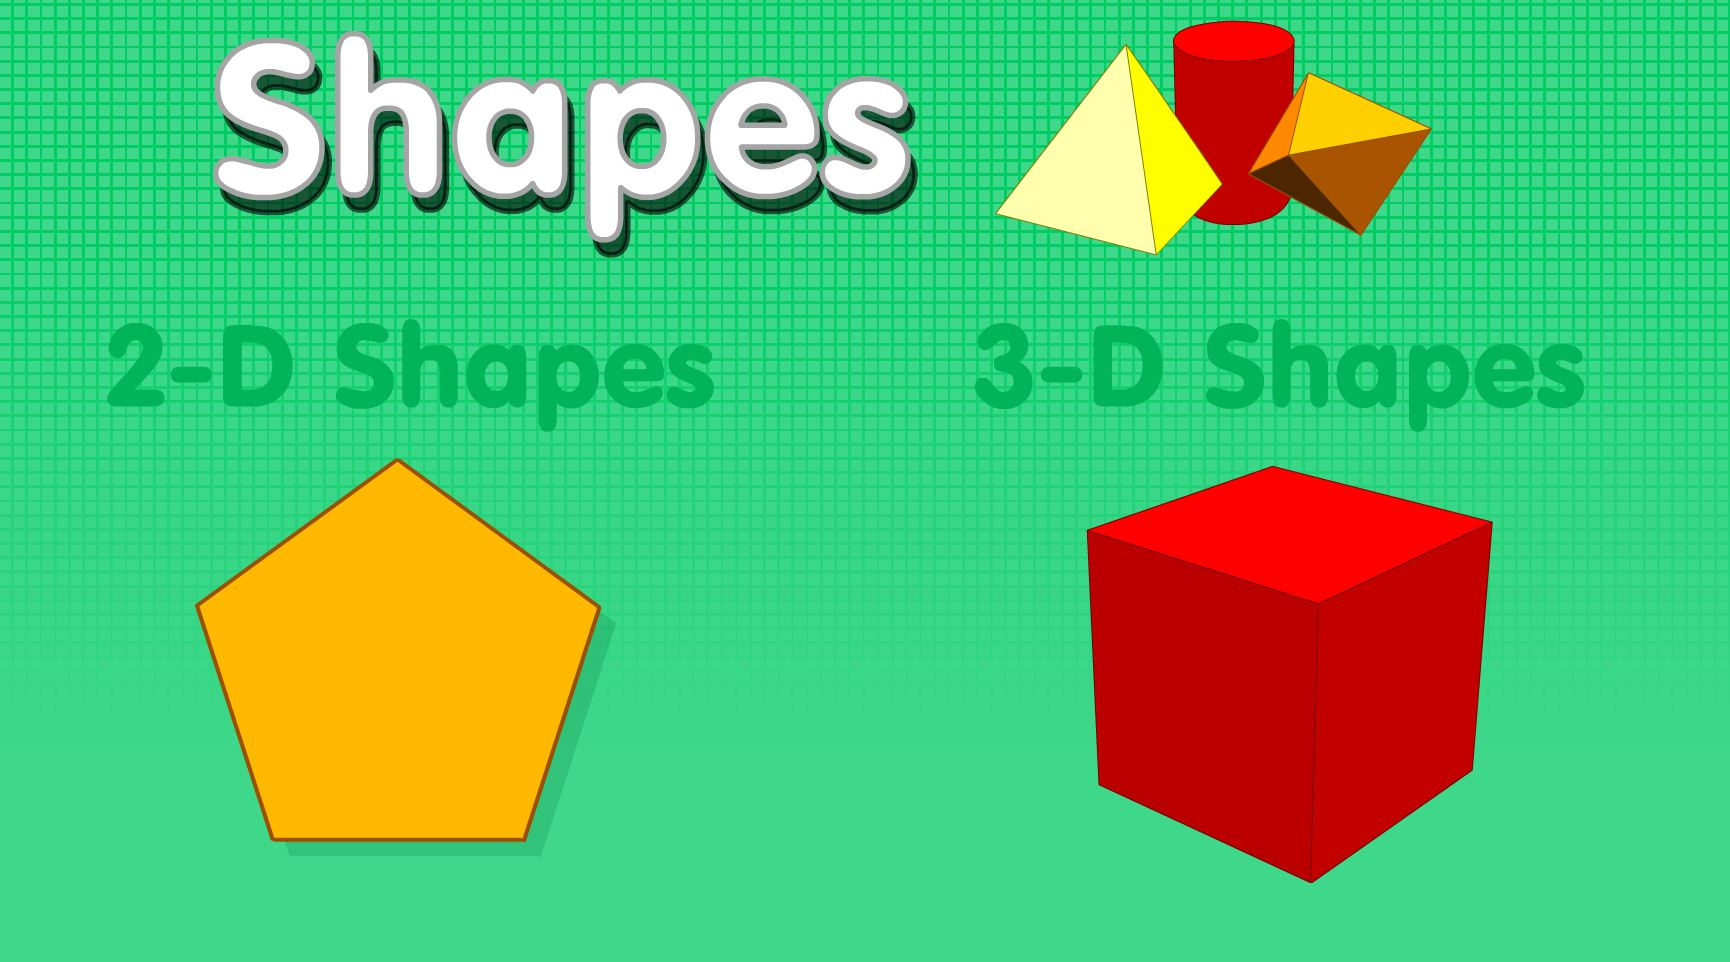 Shapes 2d and 3d shapes